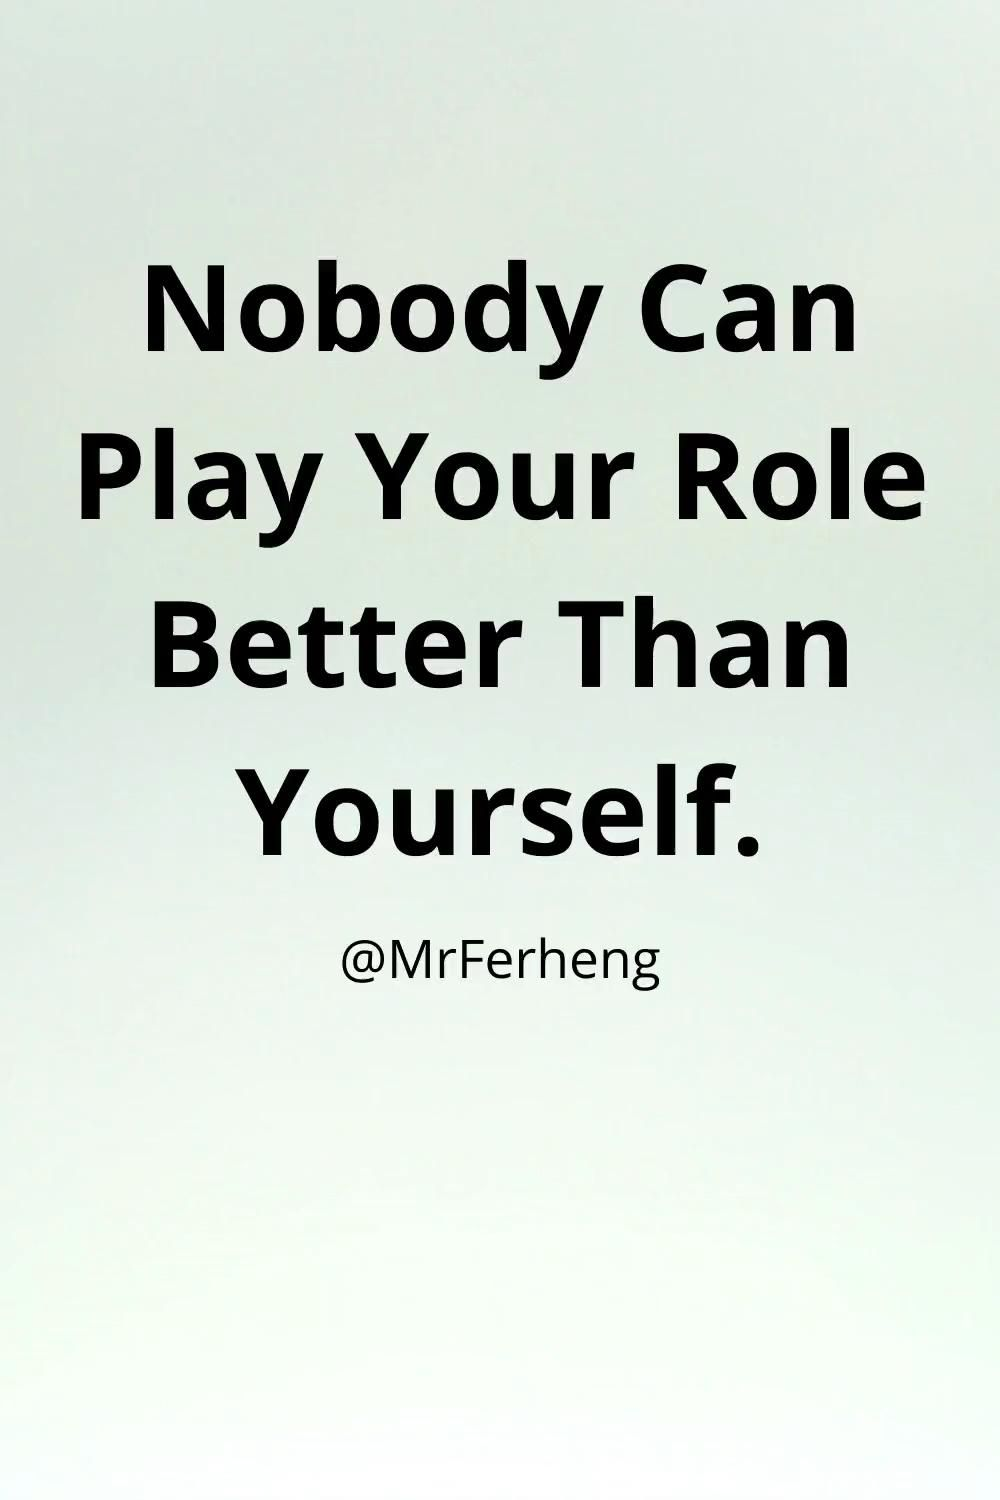 No Body Can Play Your Role